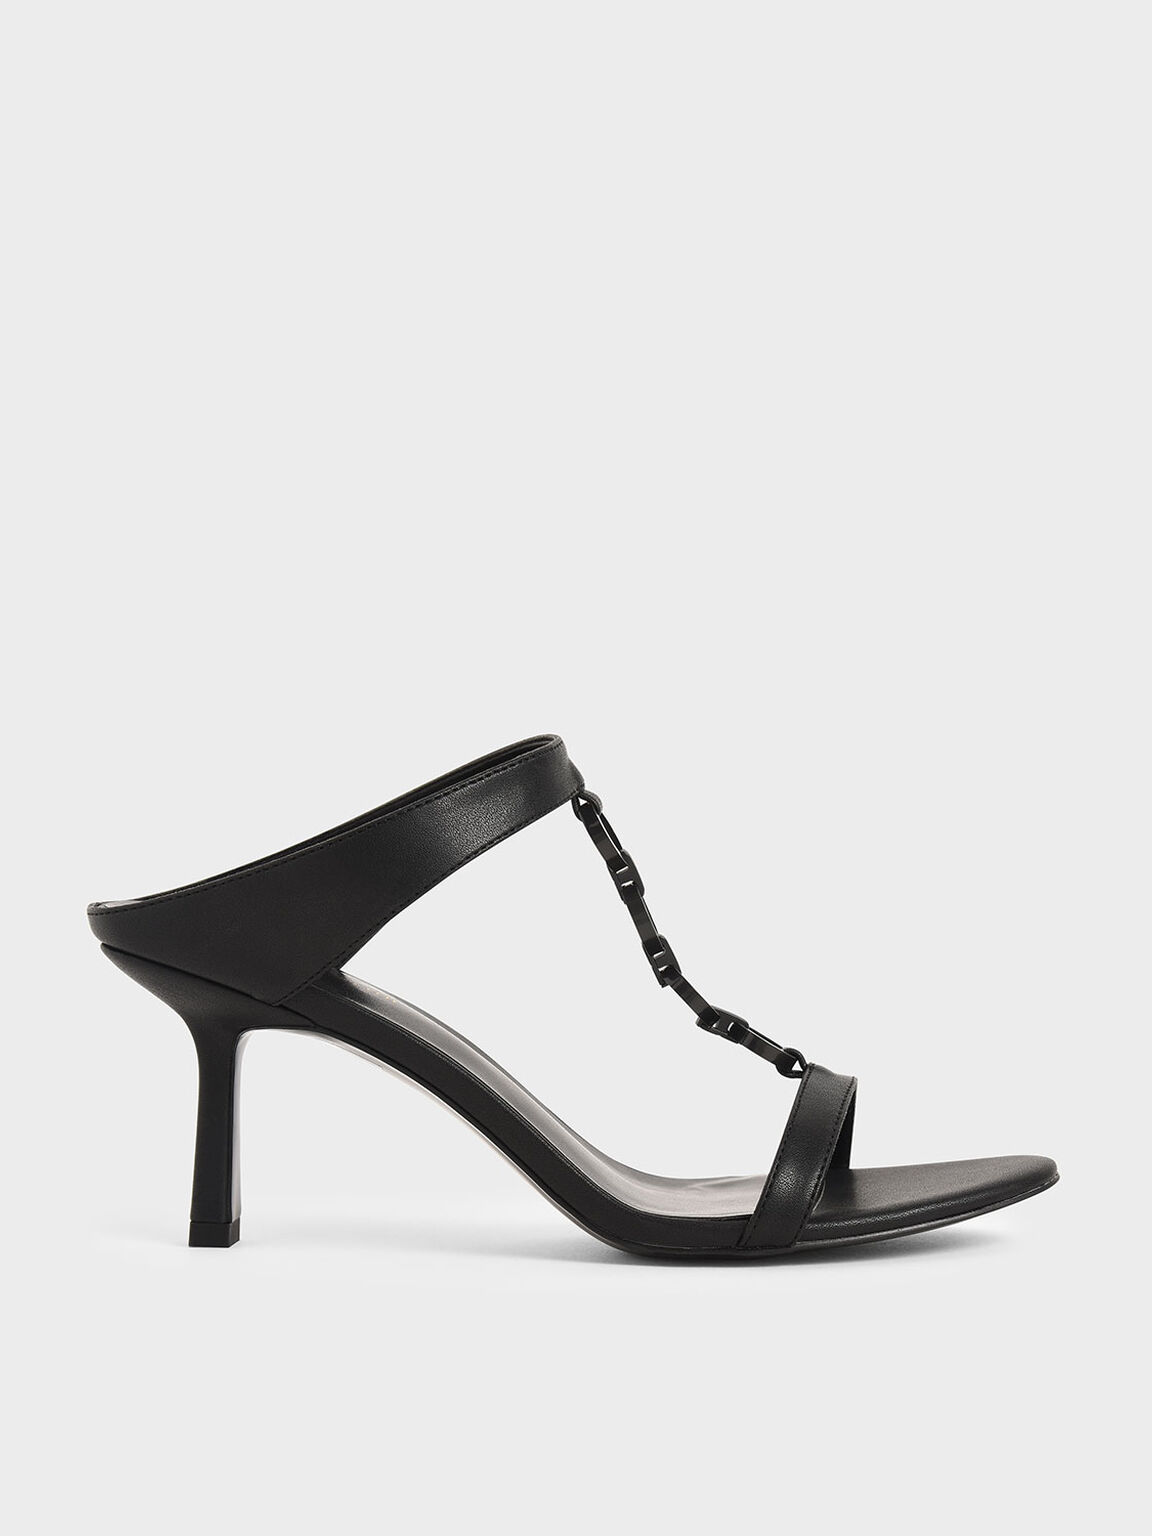 Wood-Effect Chain Link Mules, Black, hi-res